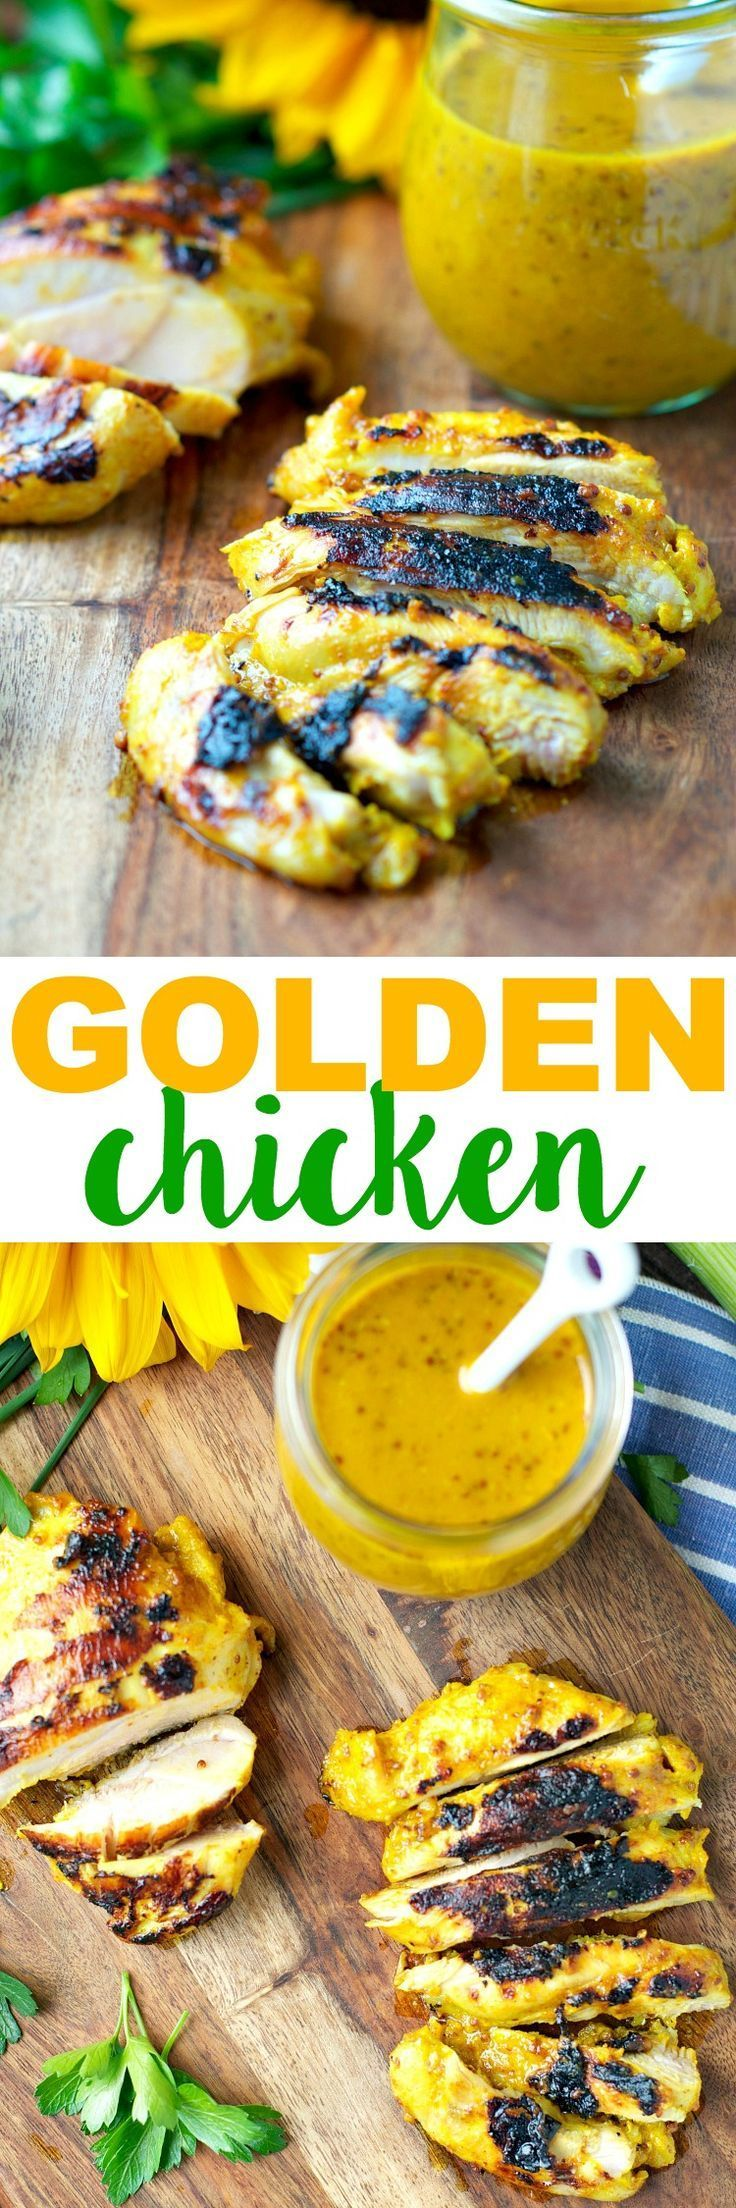 Light and Crispy Golden Chicken in just 20 minutes! Easy Dinner Recipes | Dinner Ideas | Healthy Dinner Recipes | Chicken Recipes | Grilled Chicken | Chicken Marinade | Clean Eating Dinners | Healthy Dinners Easy